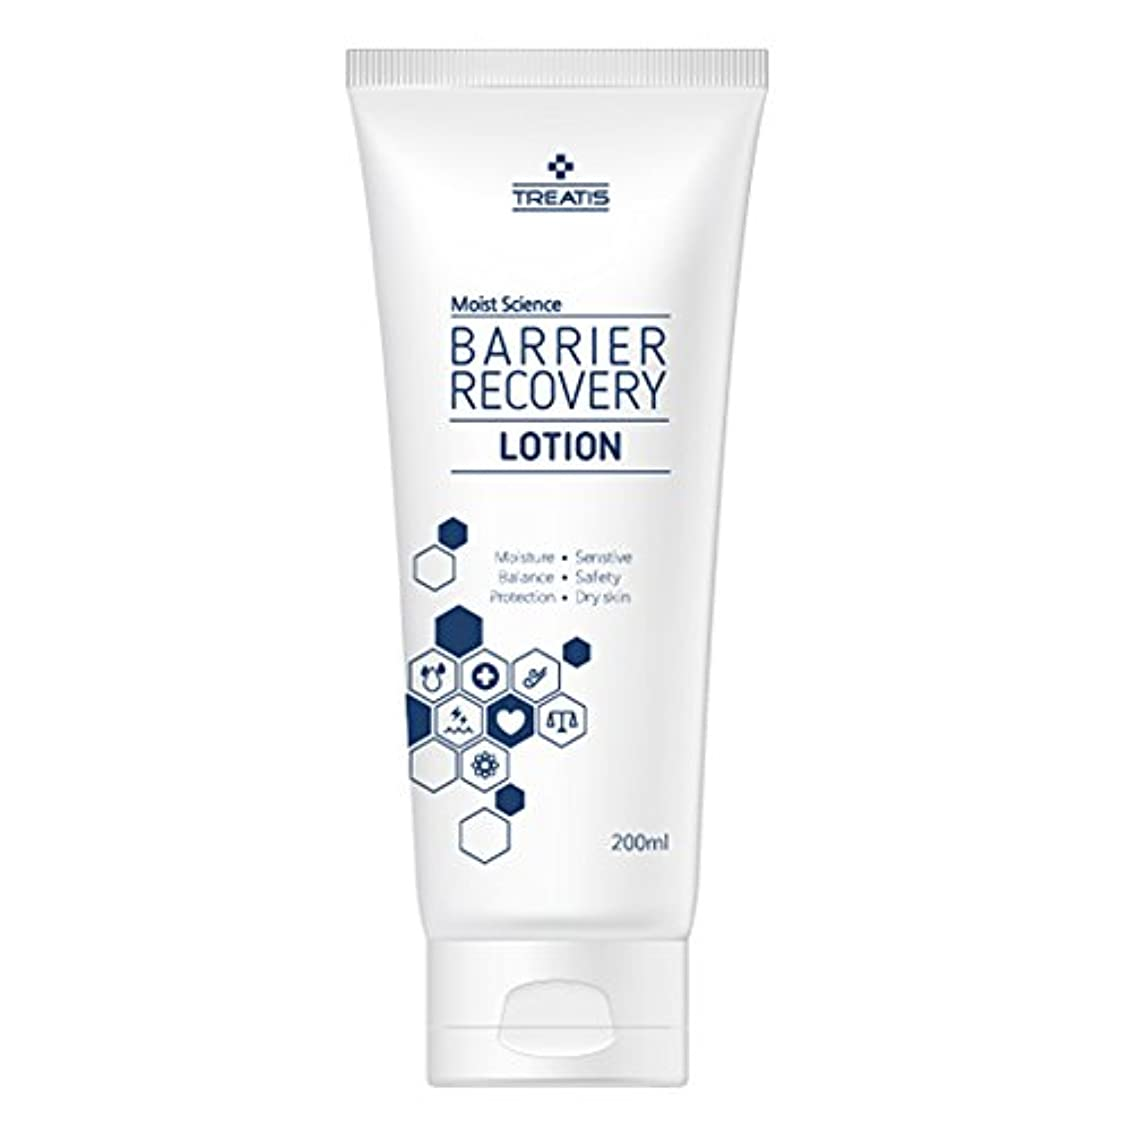 インテリア鳴り響くブロックするTreatis barrier recovery lotion 7oz (200ml)/Moisture, Senstive, Balance, Safty, Protection, Dry skin [並行輸入品]